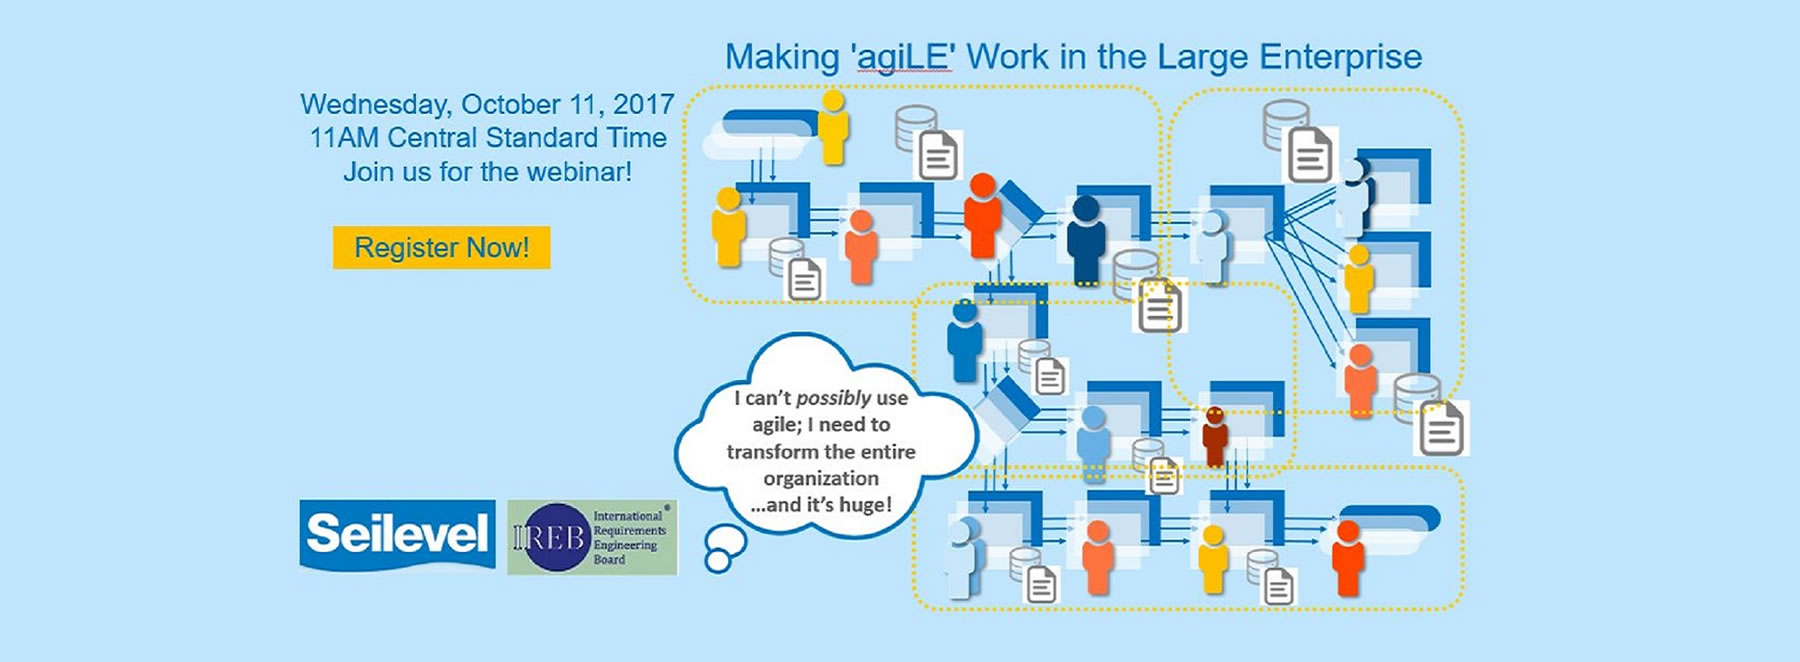 Sign Up For the Webinar - Making 'agiLE' Work: Agile in the Large Enterprise.